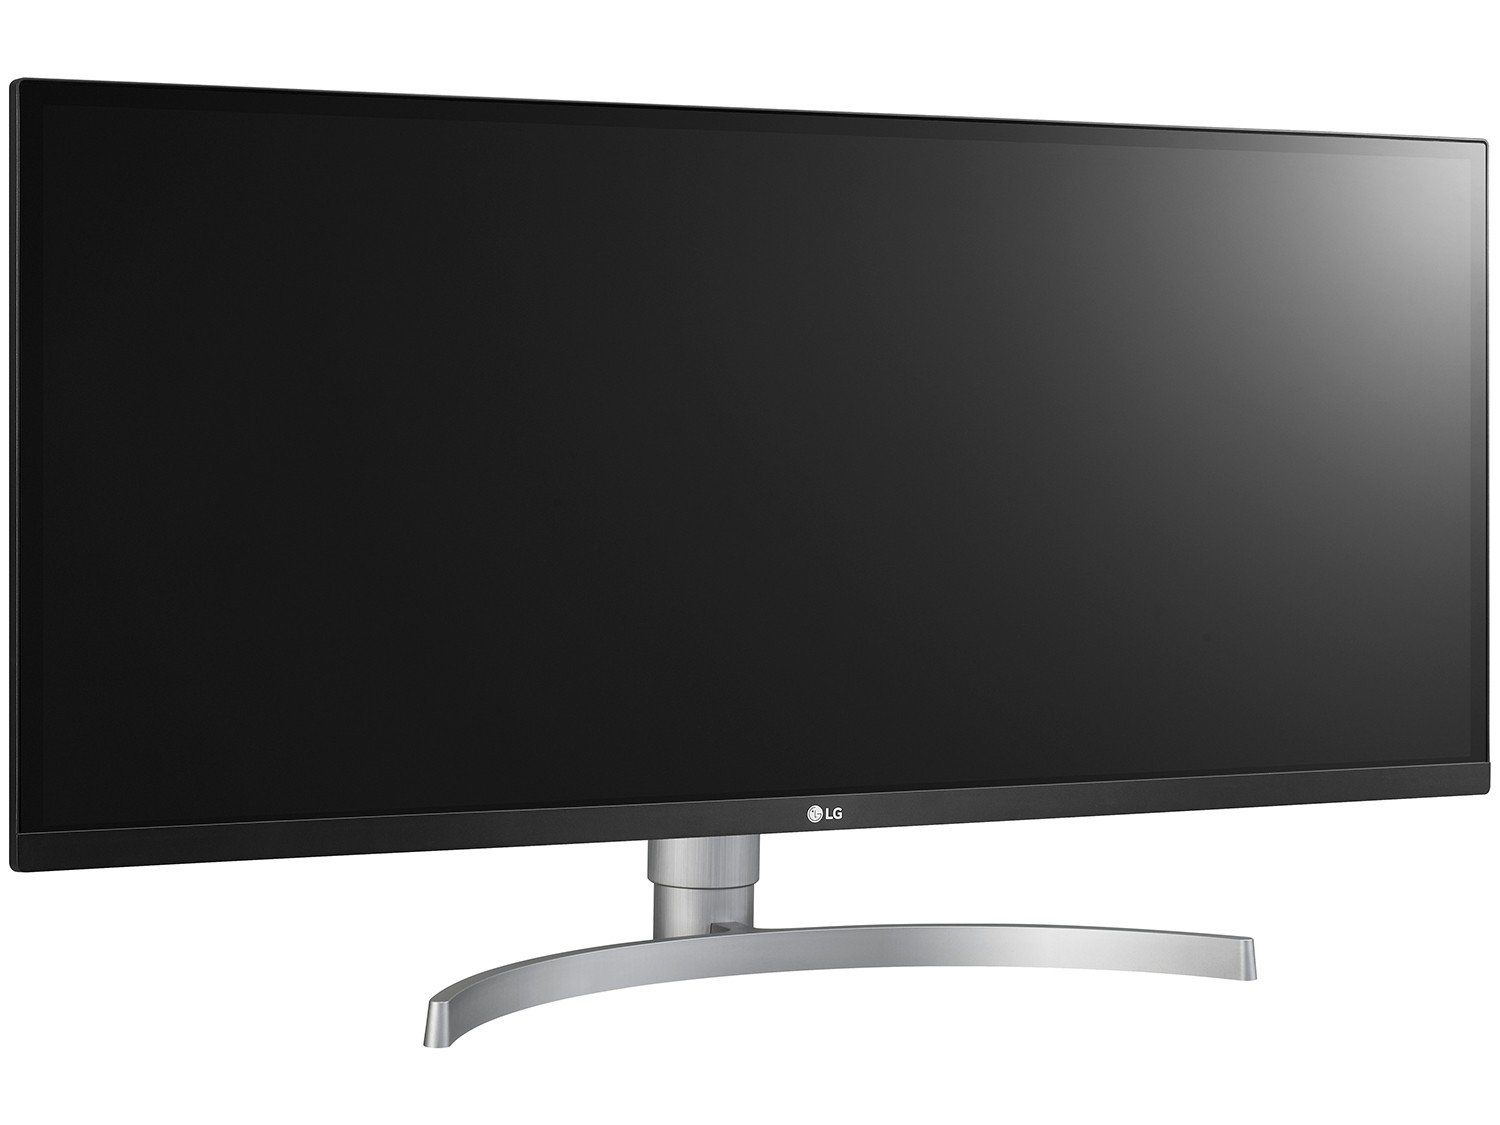 Foto 4 - Monitor para PC Full HD UltraWide LG LED IPS 34 - 34WK650